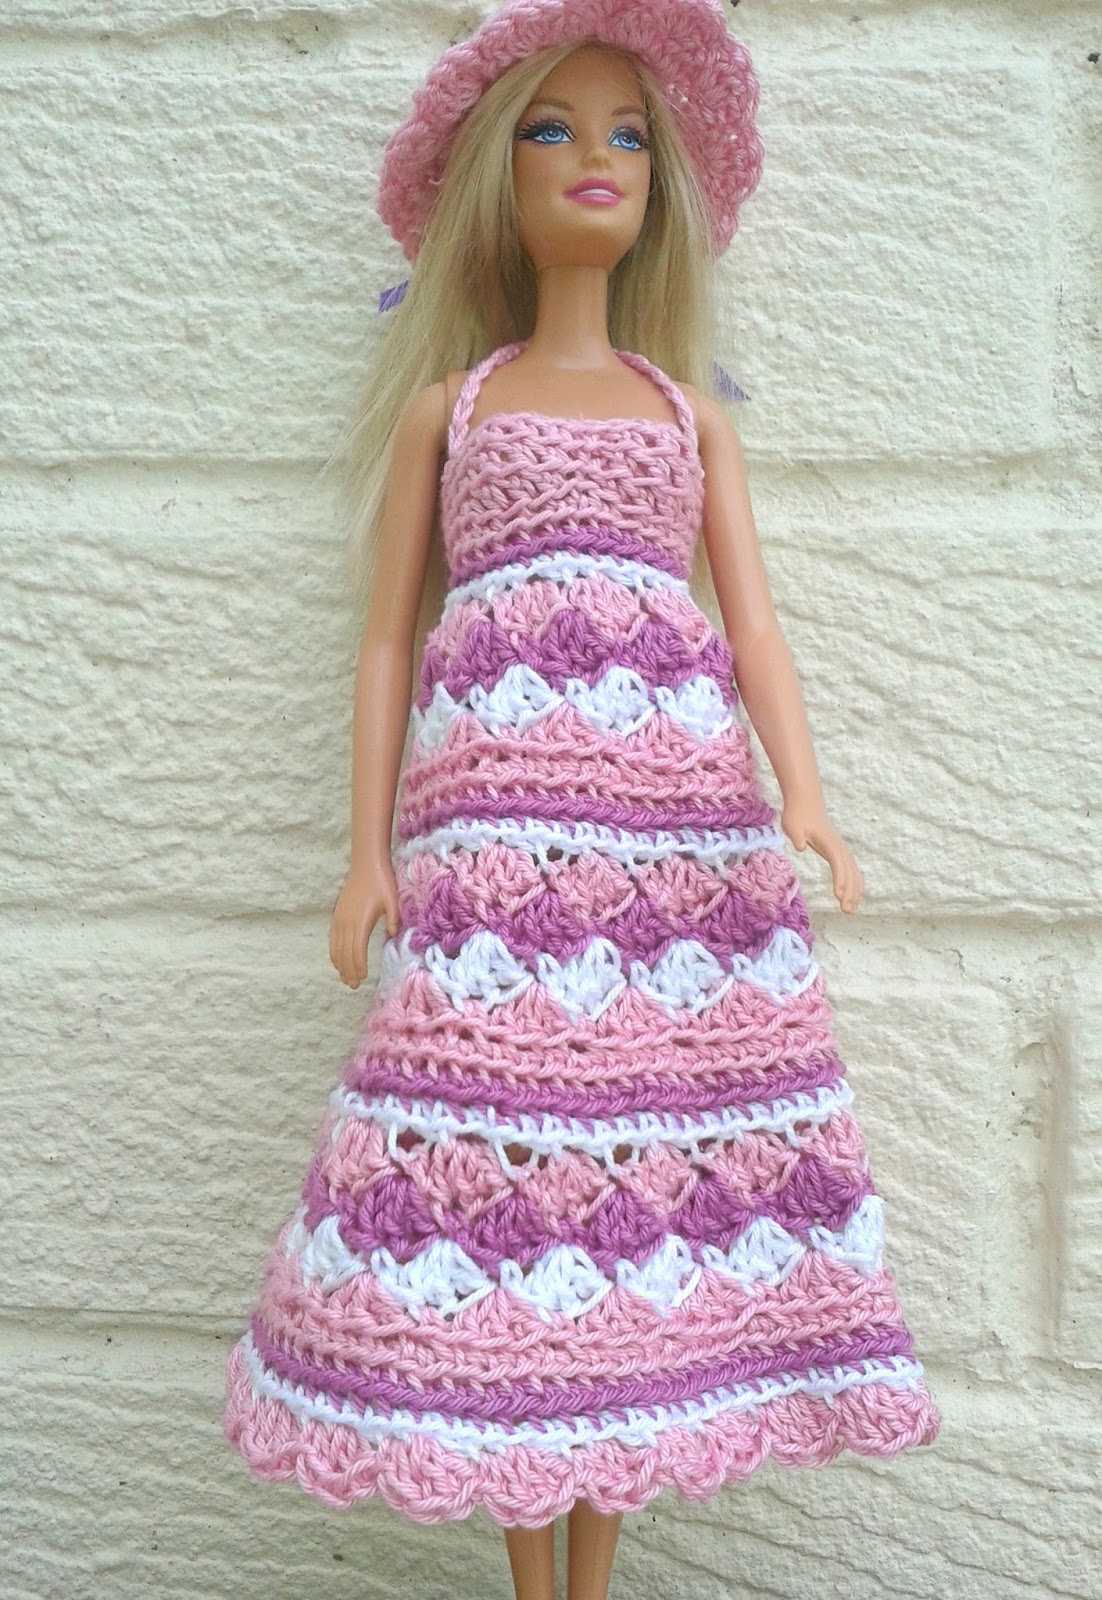 Linmary Knits: Barbie crochet summer dress and hat